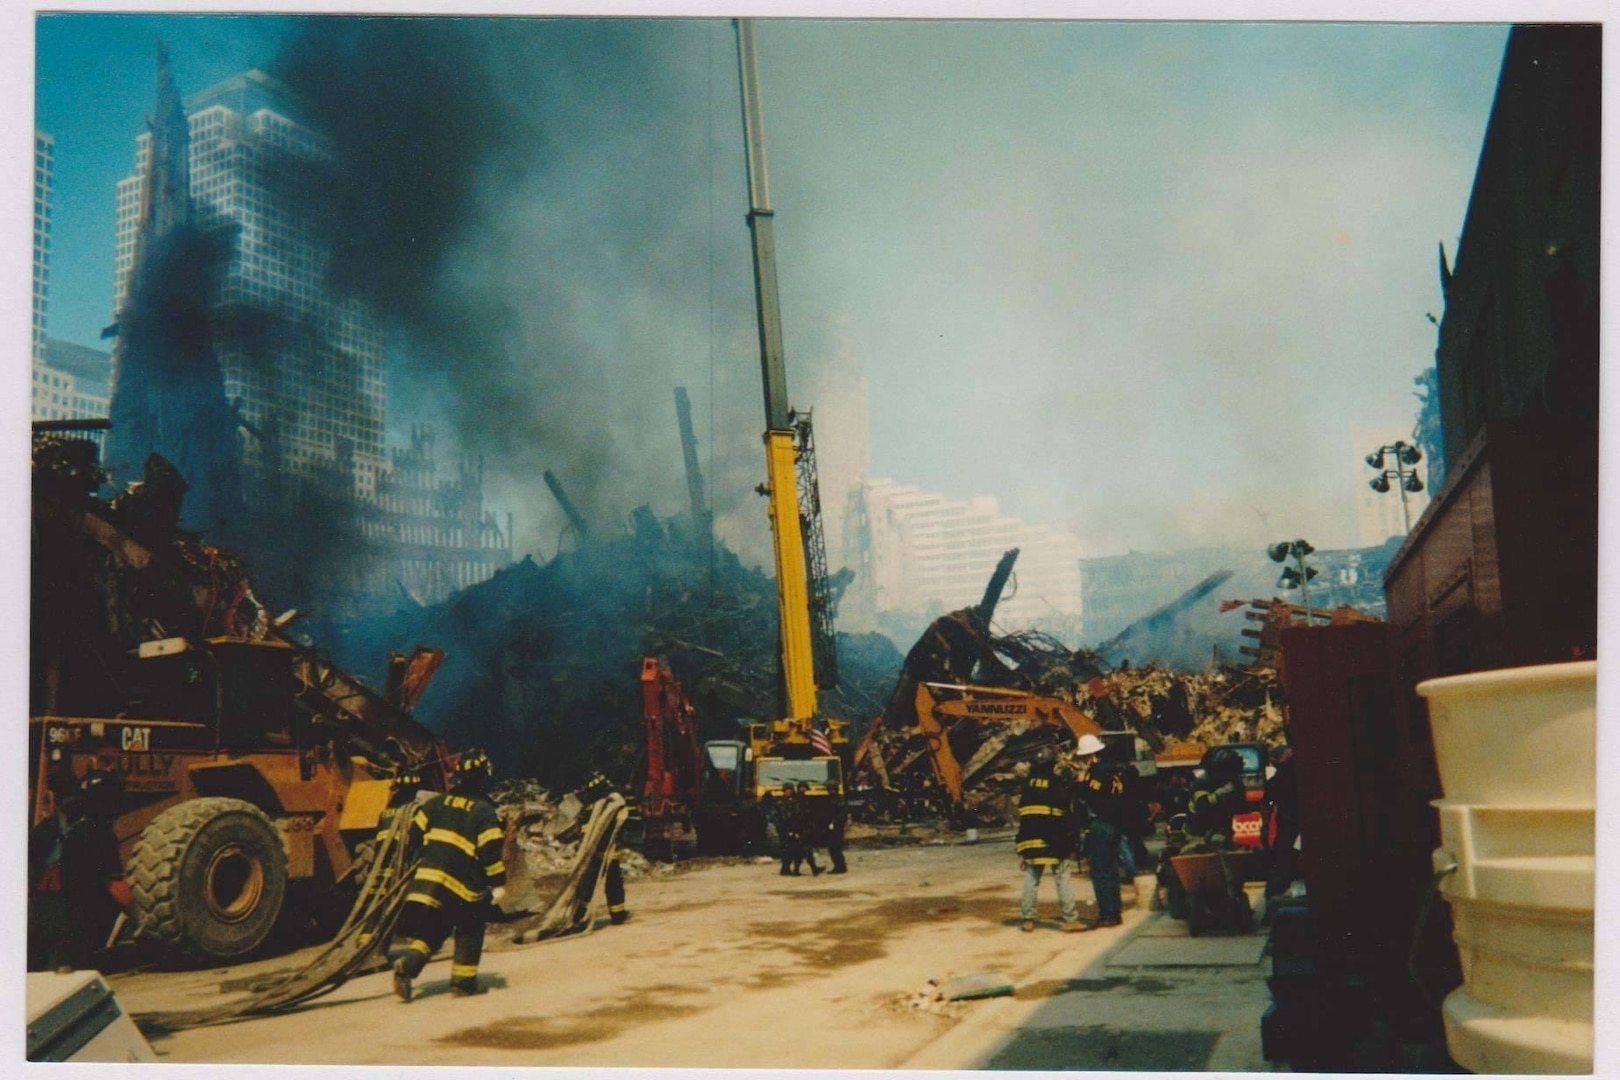 """Crews from various agencies work to clear the still smoldering """"rubble pile"""" at Ground Zero following the attack on the World Trade Center towers in New York Sept. 11, 2001. More than 14,000 New York National Guard members responded to the terrorist attacks."""